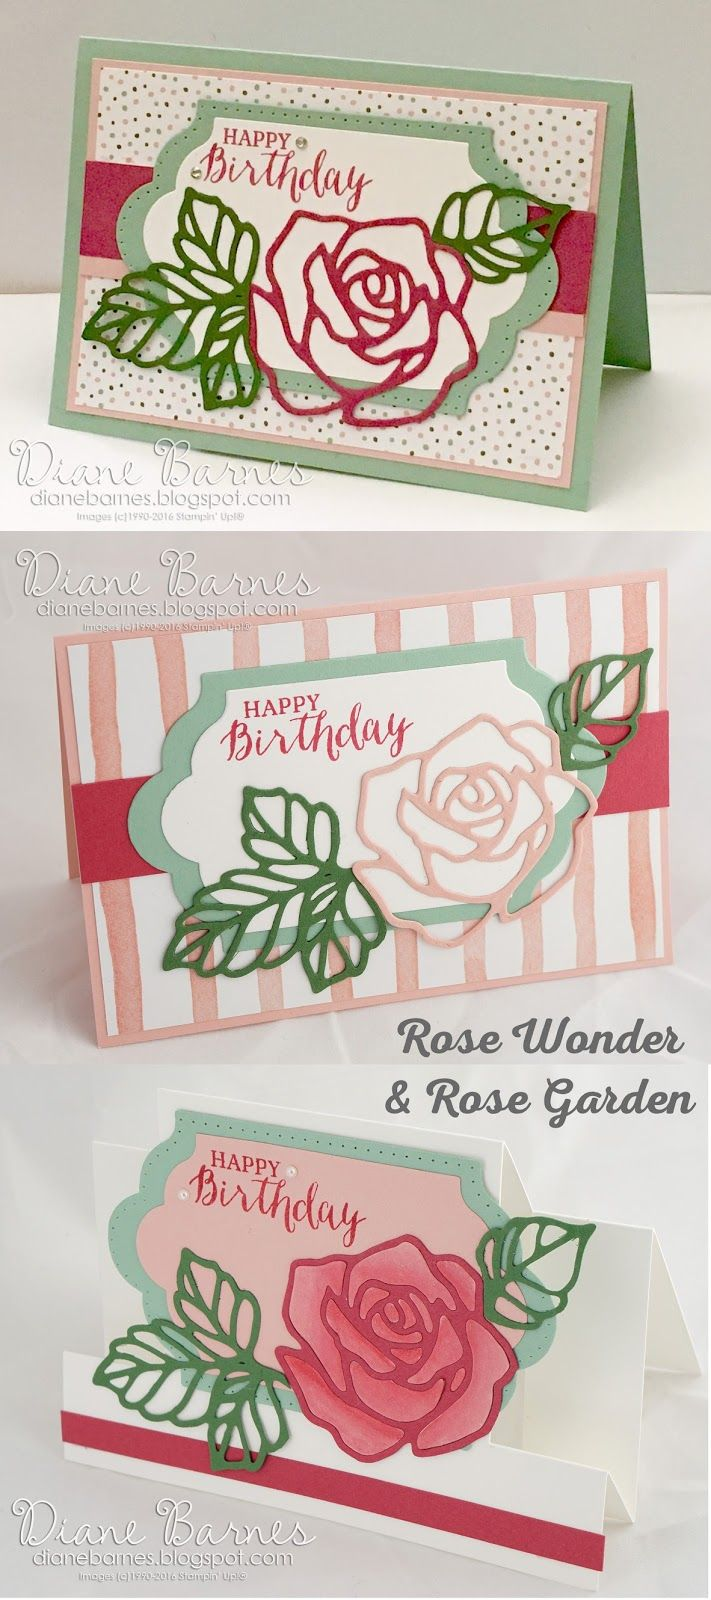 birthday cards using Stampin Up Rose Wonder stamps / Rose Garden dies & Lots of Labels dies. 201617 Annual Catalogue. by Di Barnes #colourmehappy